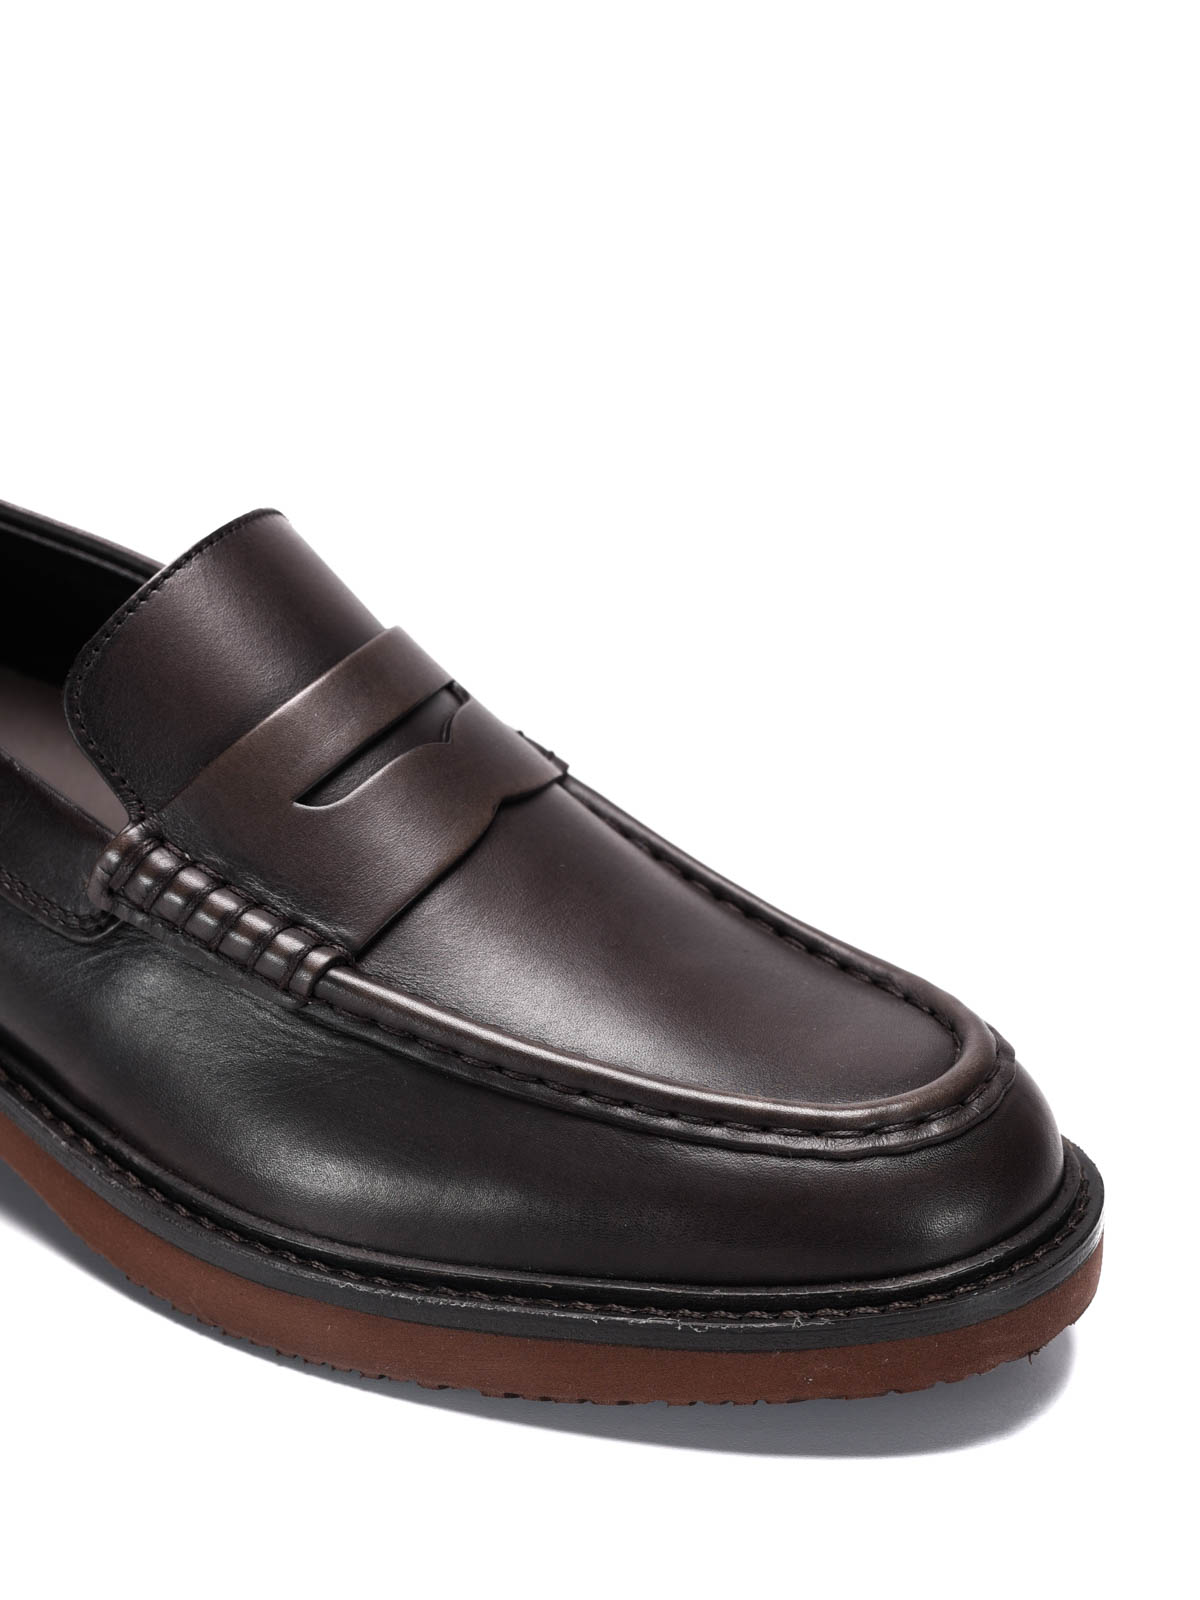 Hogan - H217 Route loafers - Loafers & Slippers - HXM2170L8317X7S800